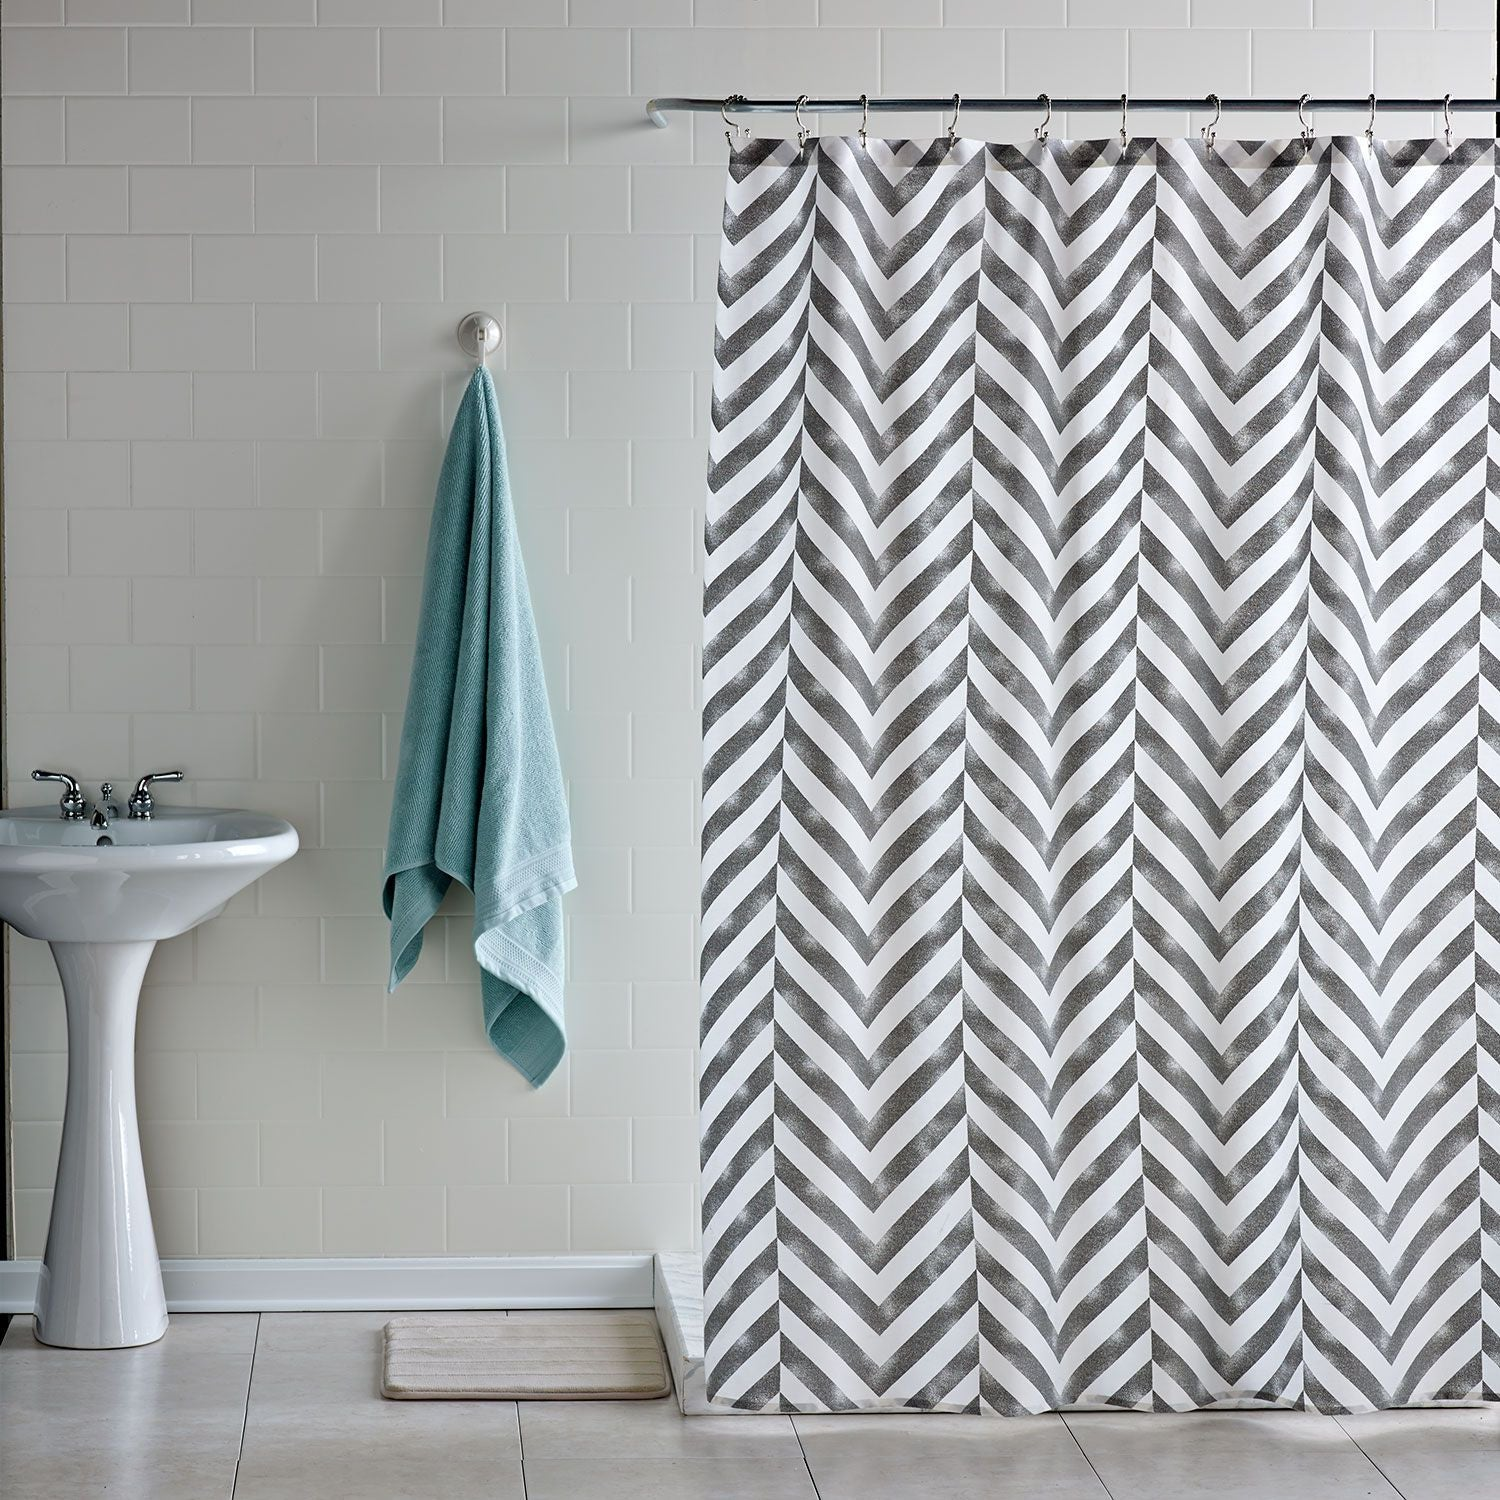 Chevron bathroom sets with shower curtain and rugs - Tiled Chevron Shower Curtain